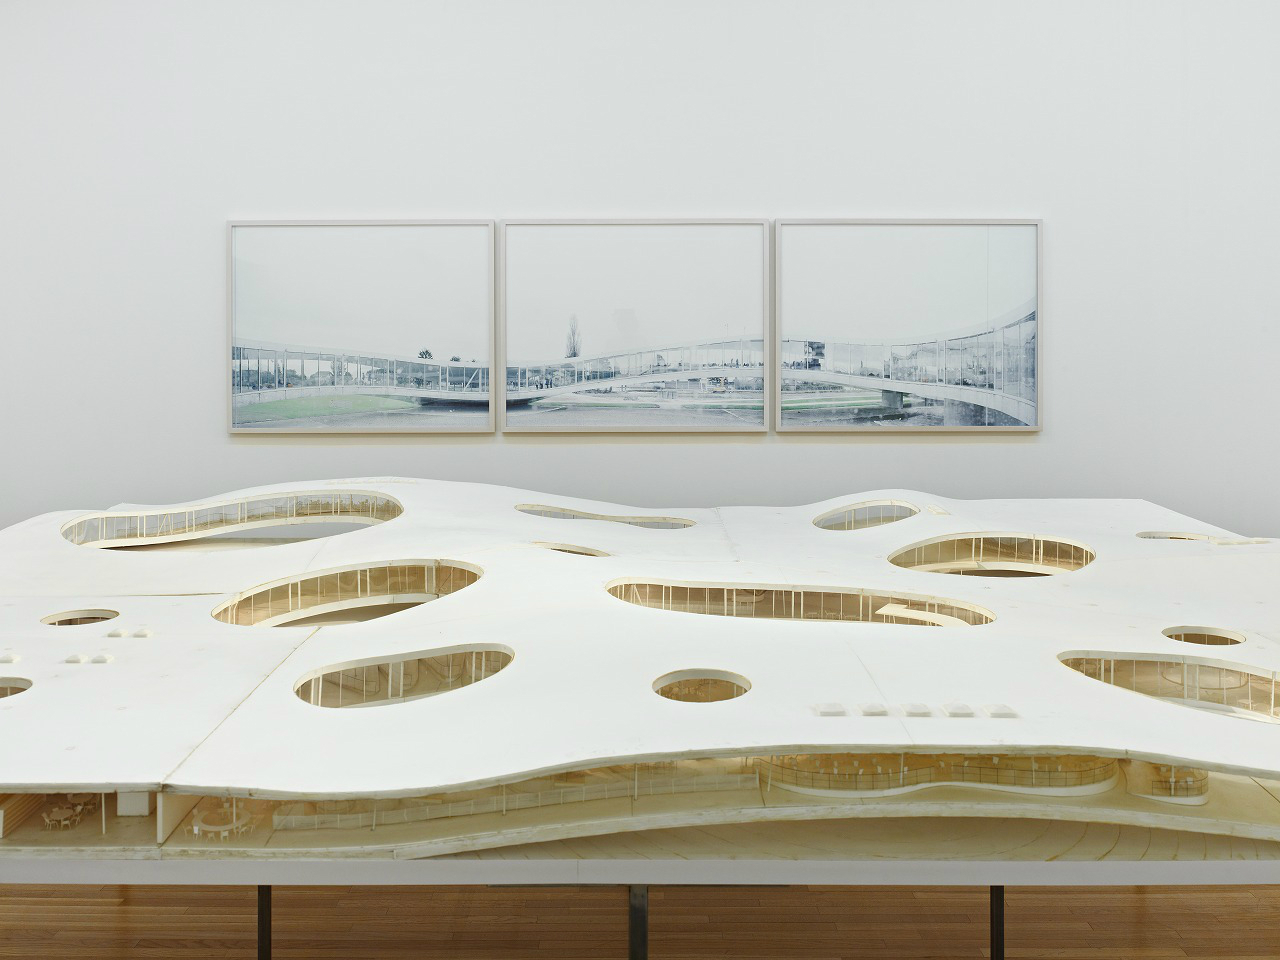 Exhibit in tokyo architectural environments for tomorrow new spatial